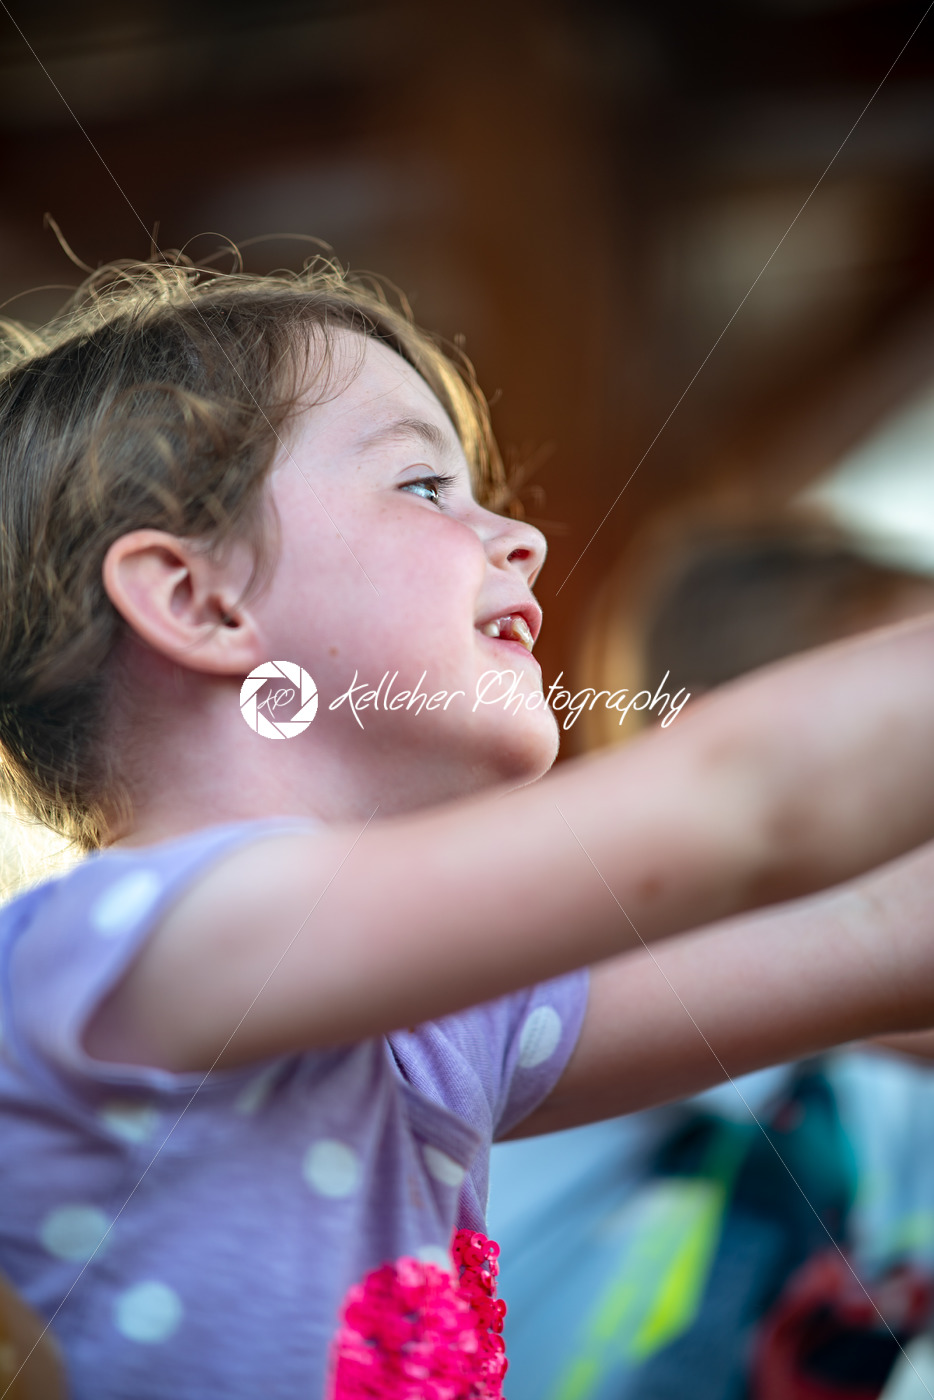 Happy young girl having fun on boardwalk amusement ride - Kelleher Photography Store